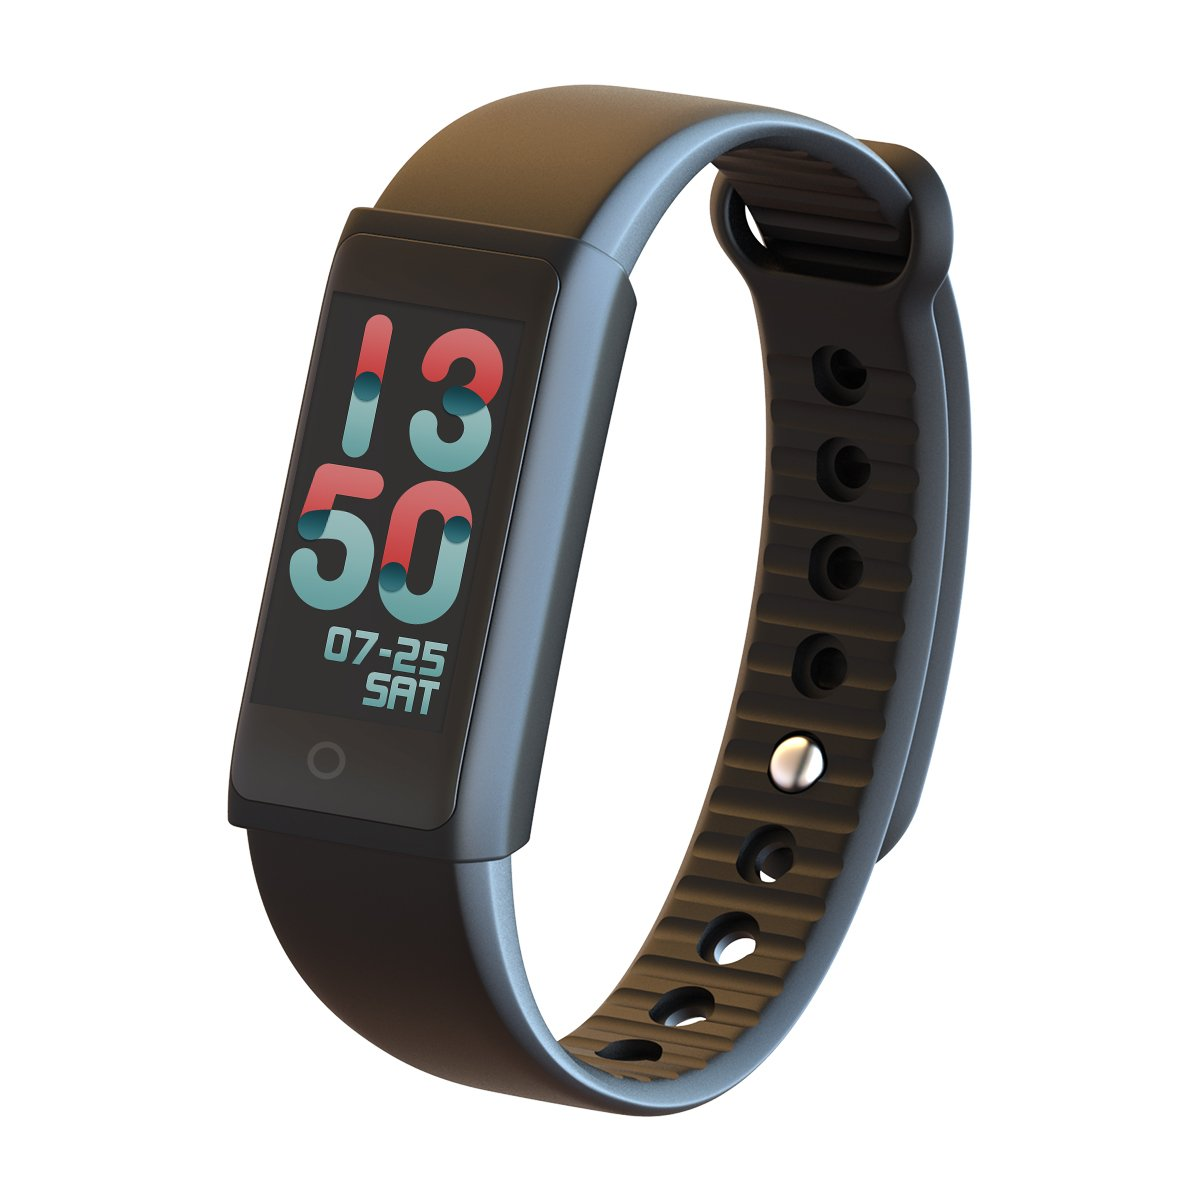 PANJIA X6S Color OLED Touch Screen Women Men Smart Bracelet Watch Healthy Fitness Smart Tracker Intelligent Band Heartrate Blood Pressure Oxygen Oximeter Sport Bracelet for Ios Android Phone